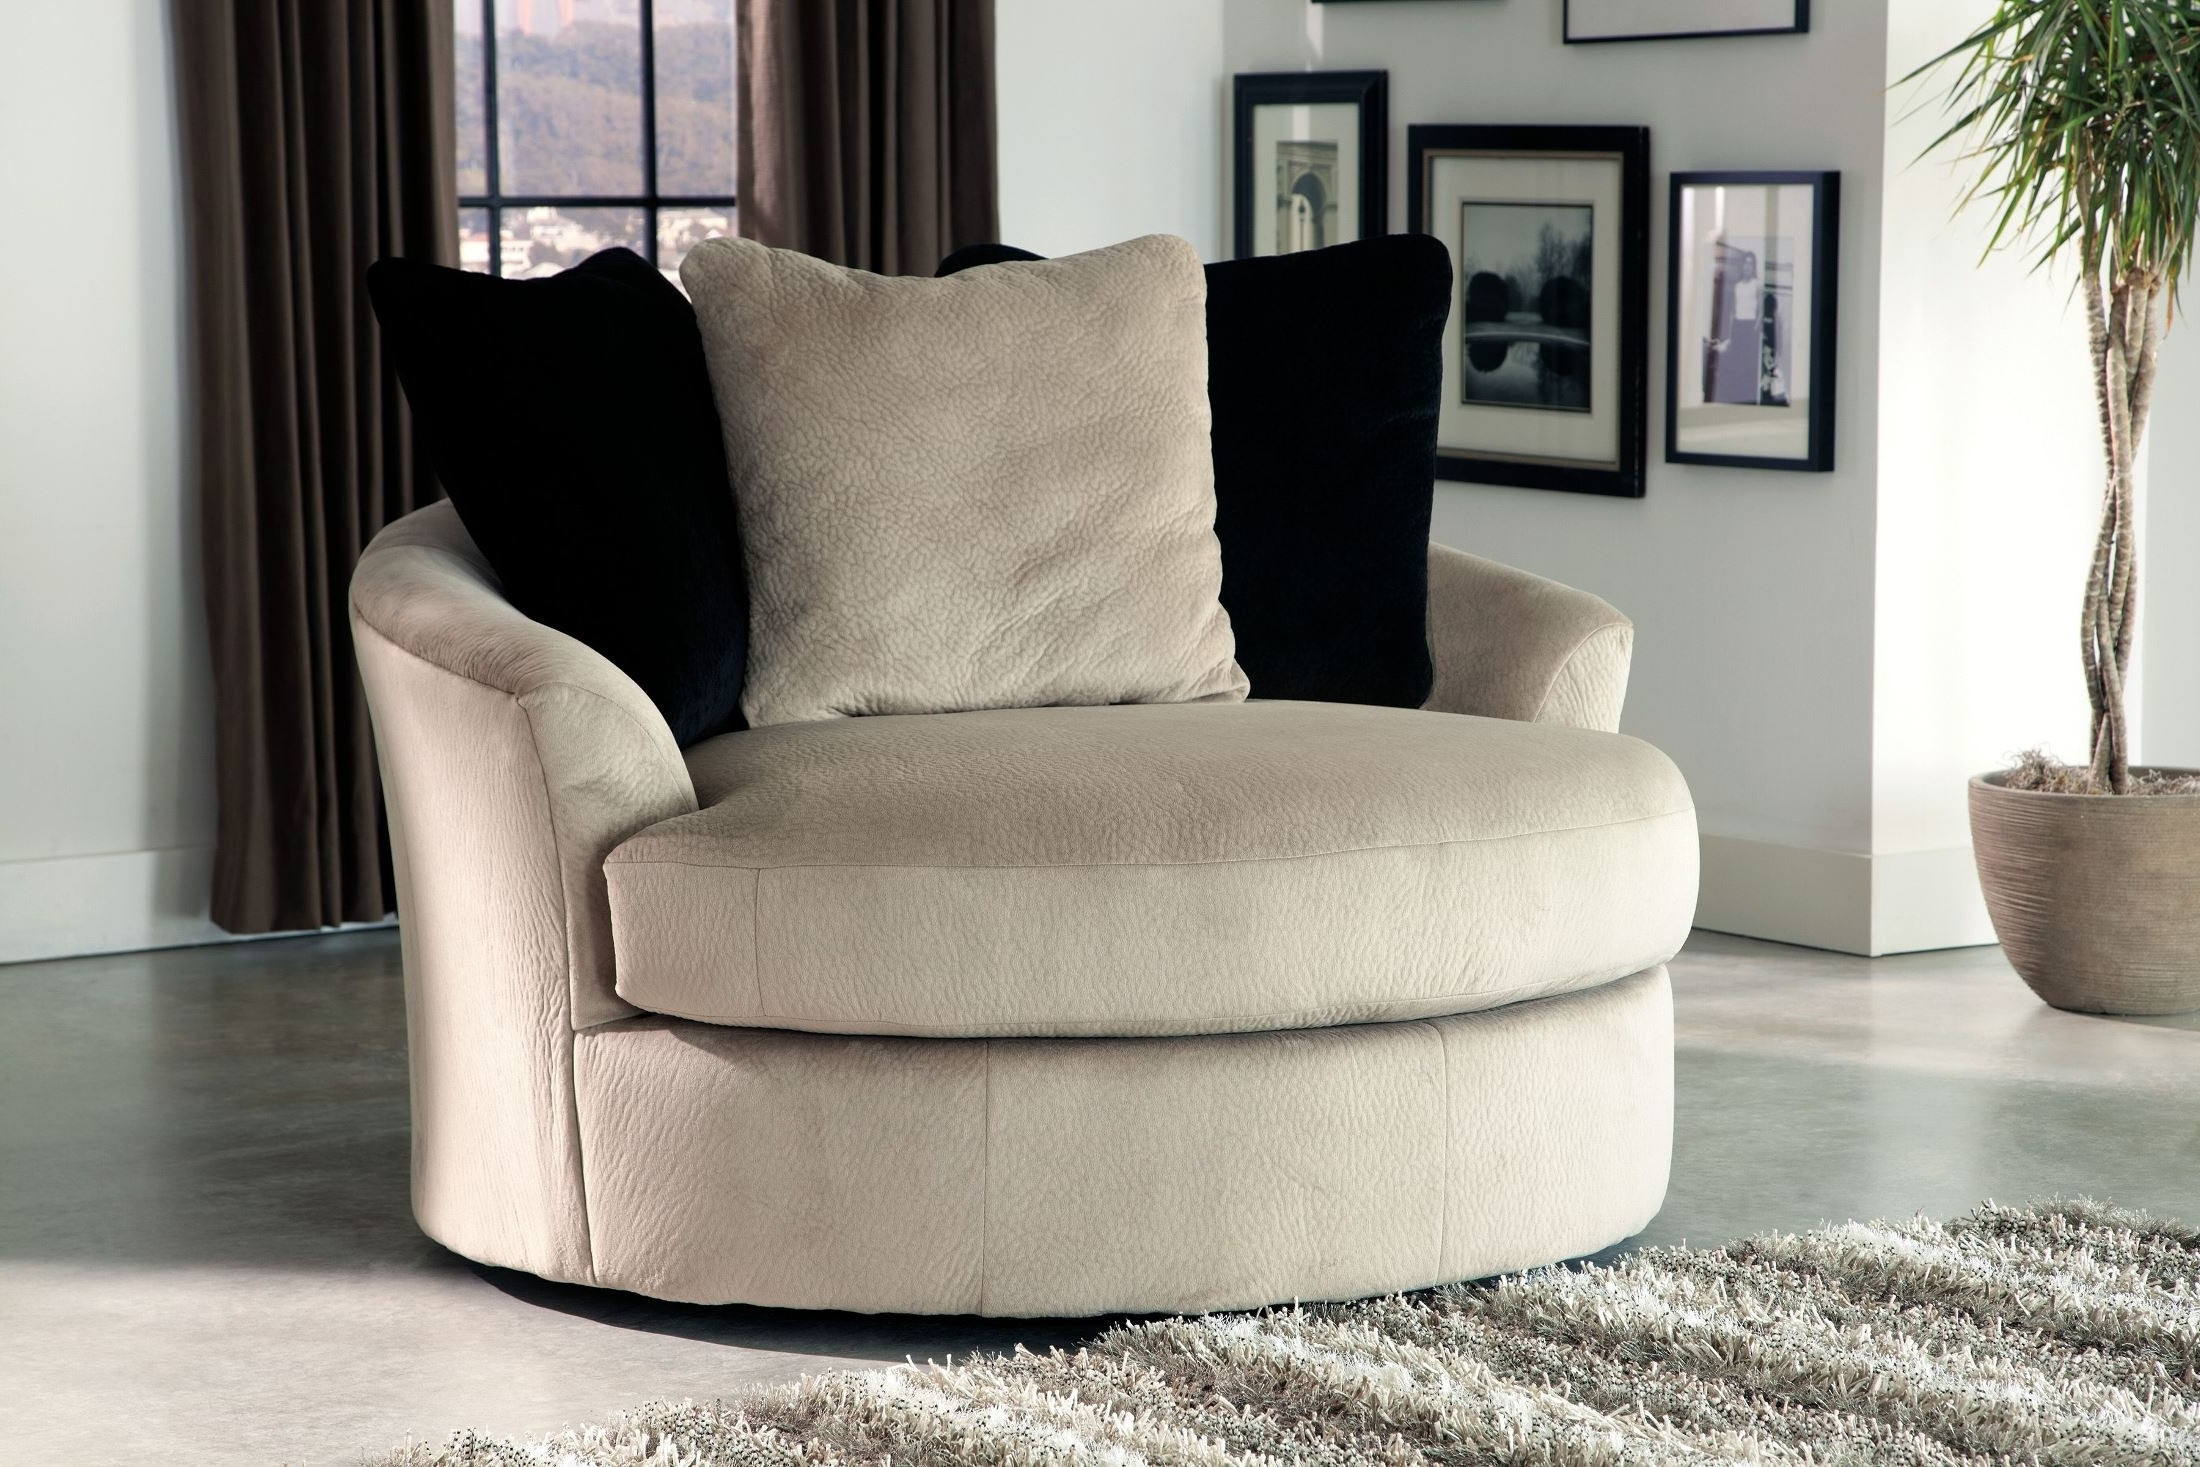 Latest Chair : Cheap Swivel Chairs Round Swivel Cuddle Chair Swivel Couch Throughout Round Swivel Sofa Chairs (View 8 of 15)